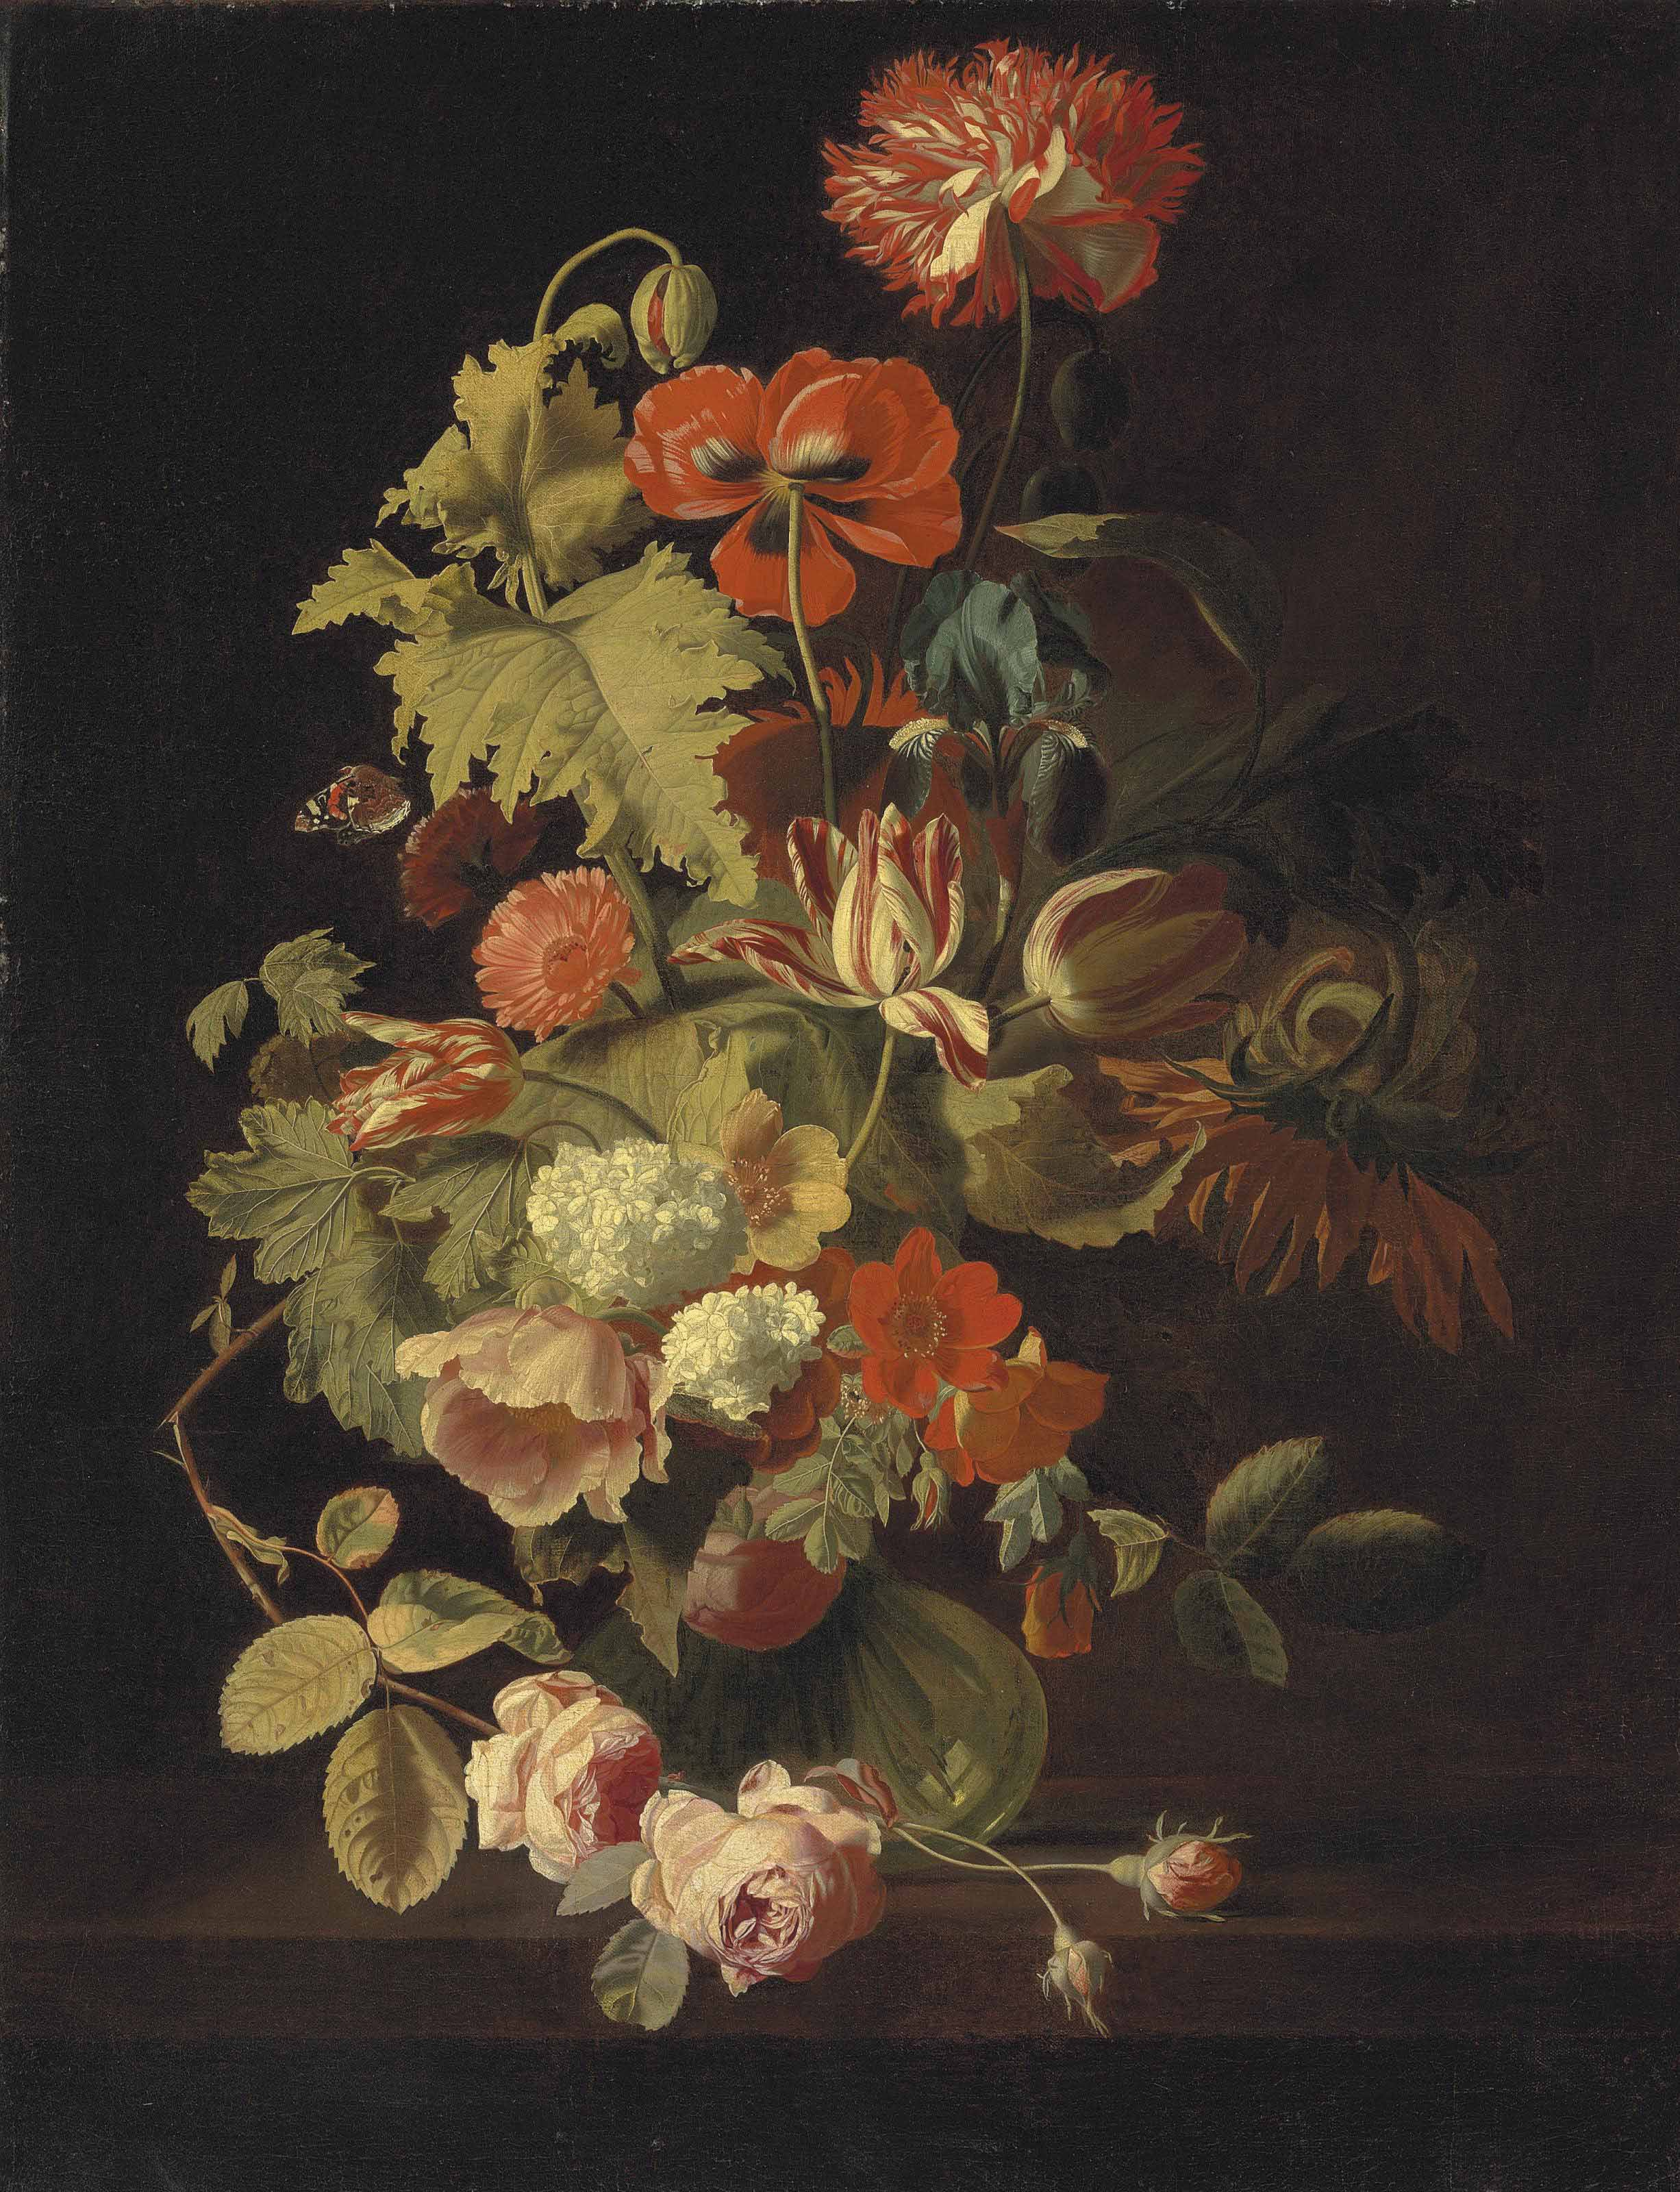 A carnation, iris, roses, tulips and other flowers in a glass vase on a stone ledge